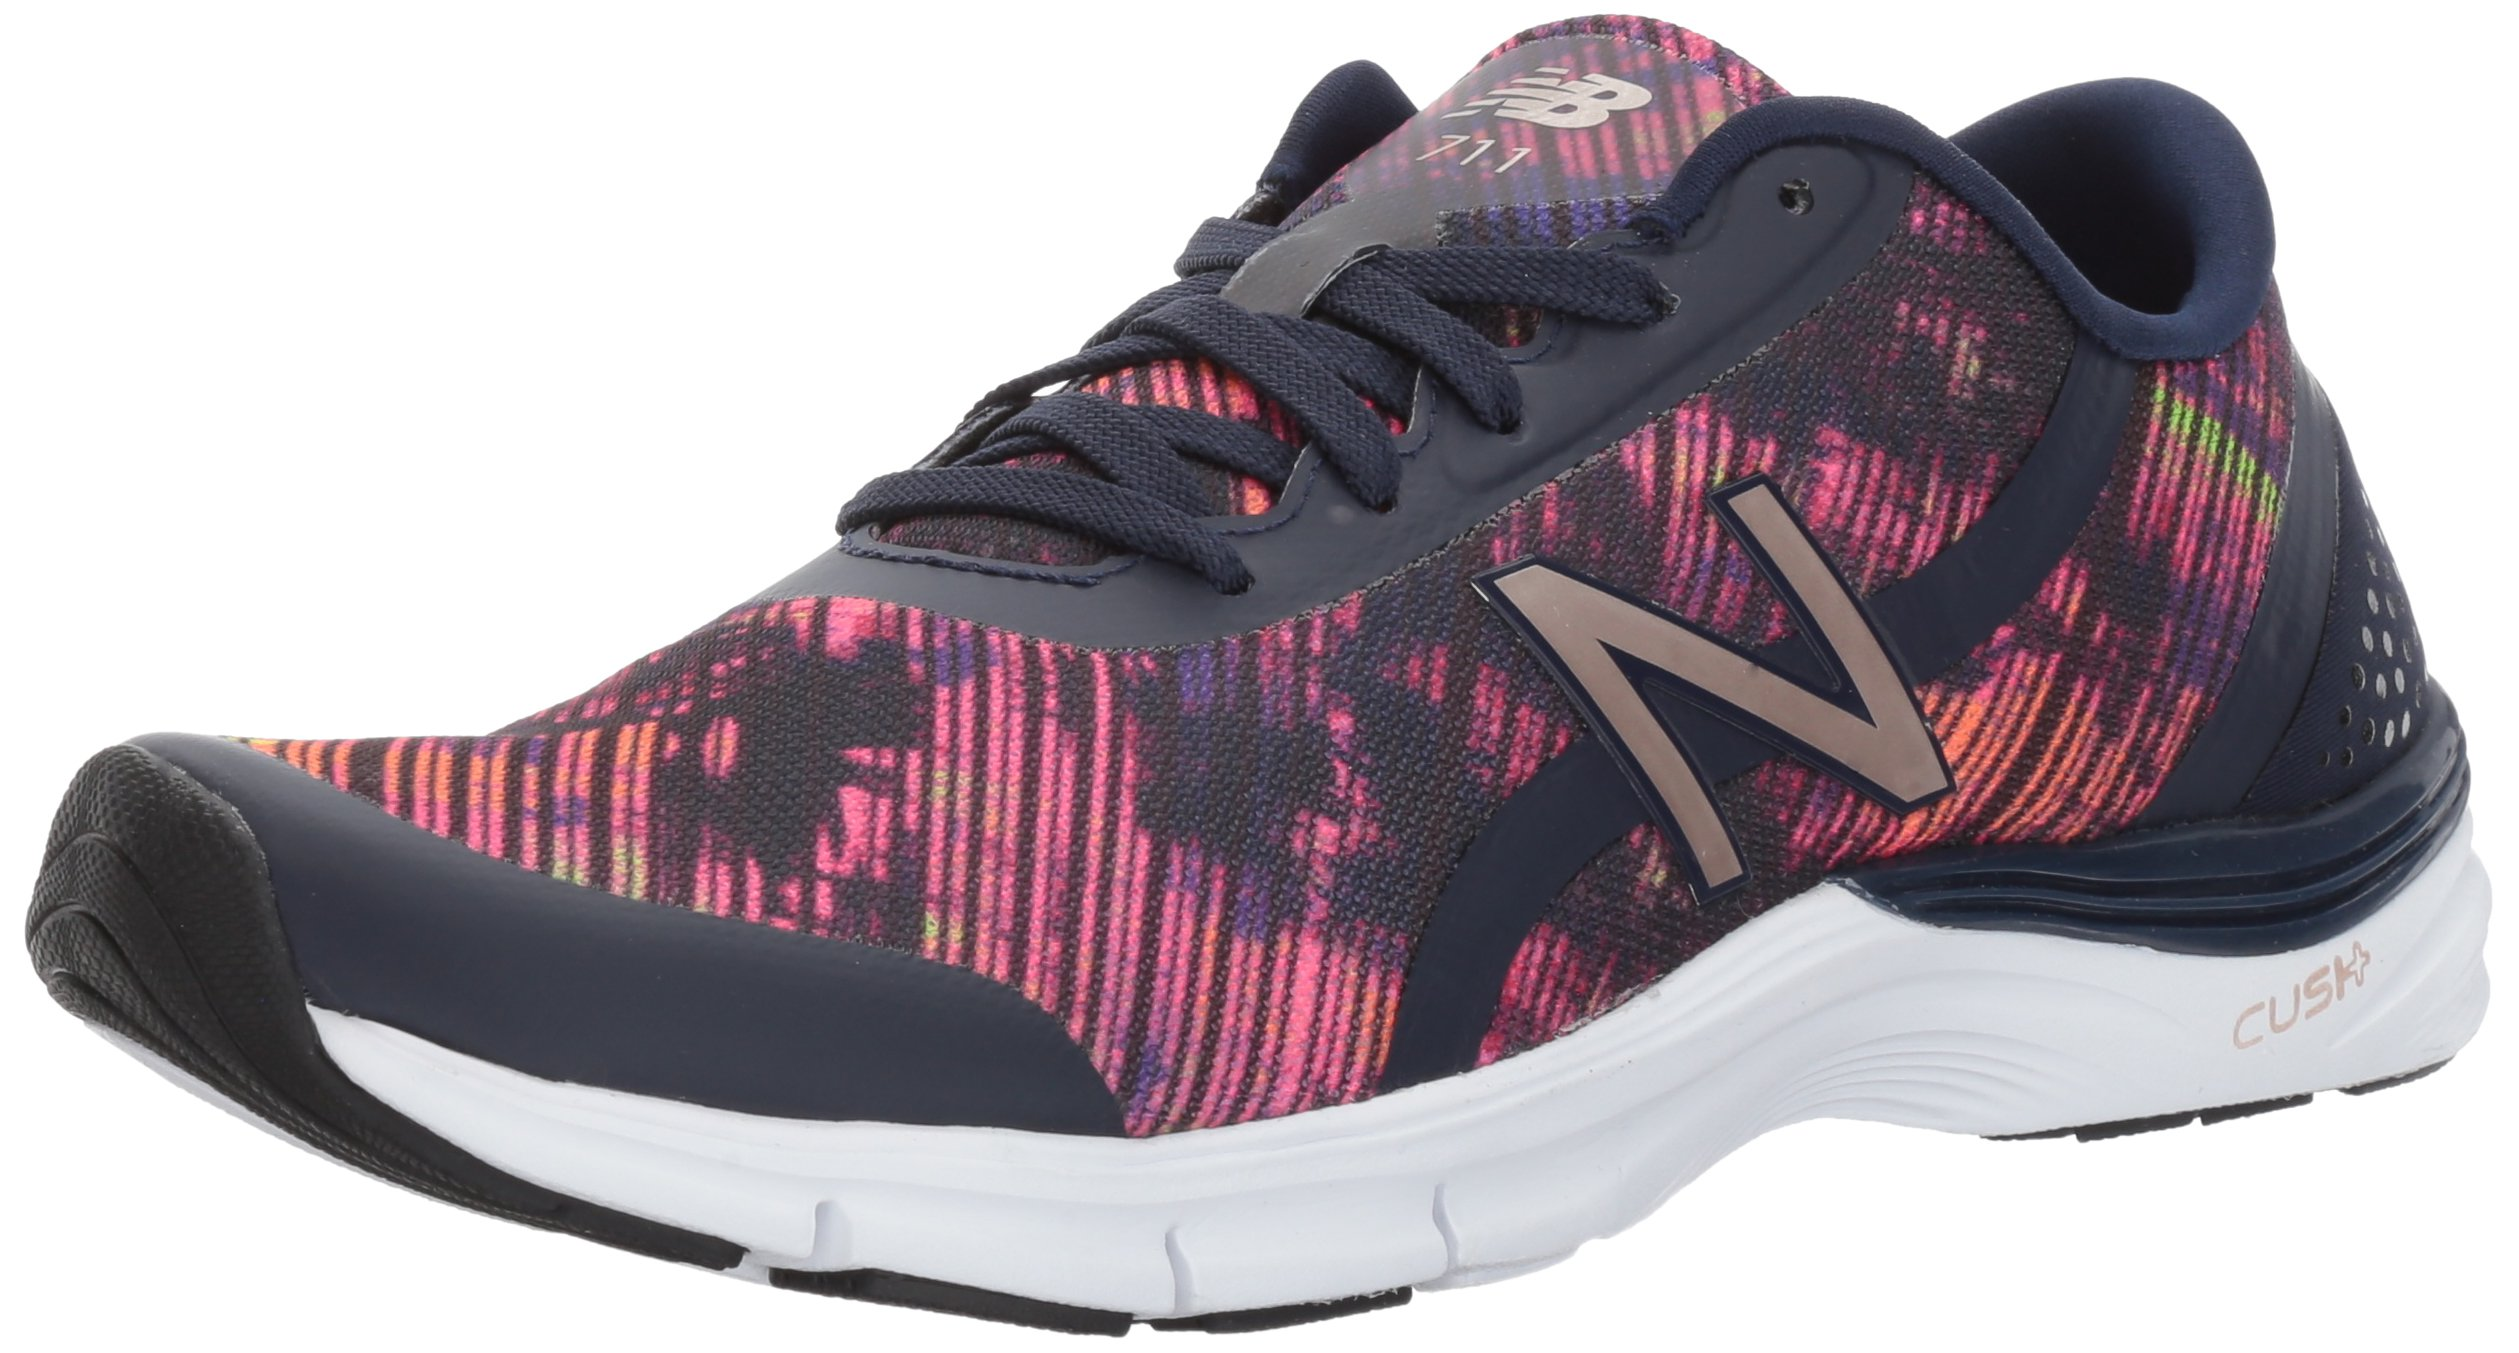 New Balance Women's 711V3 Graphic Cross Trainer, Pigment/Striped Velocity Graphic, 9 D US